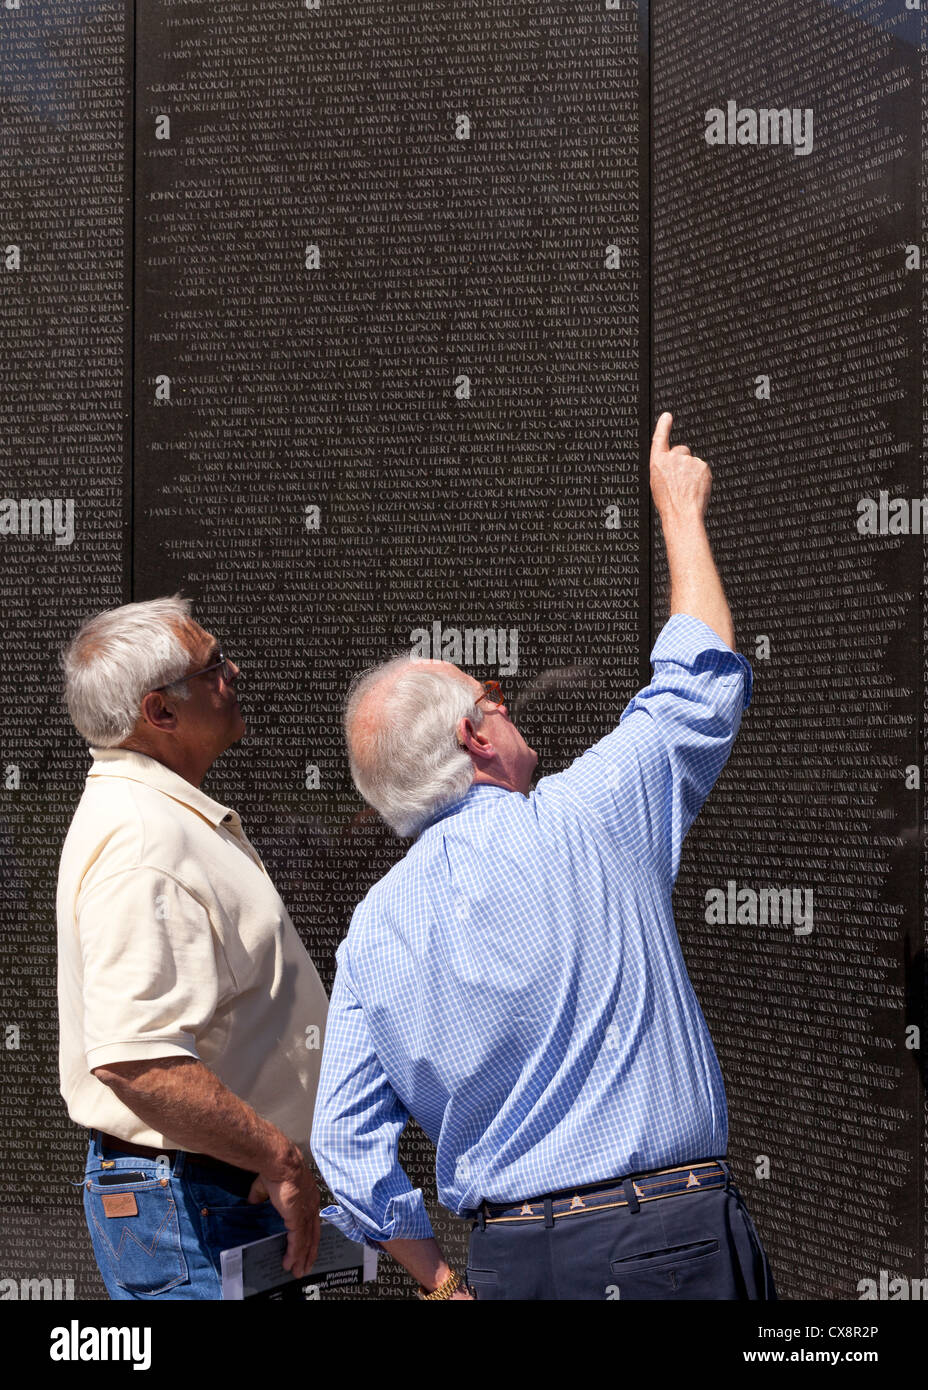 Vietnam vets point up to a name on the Vietnam War Memorial wall - Stock Image